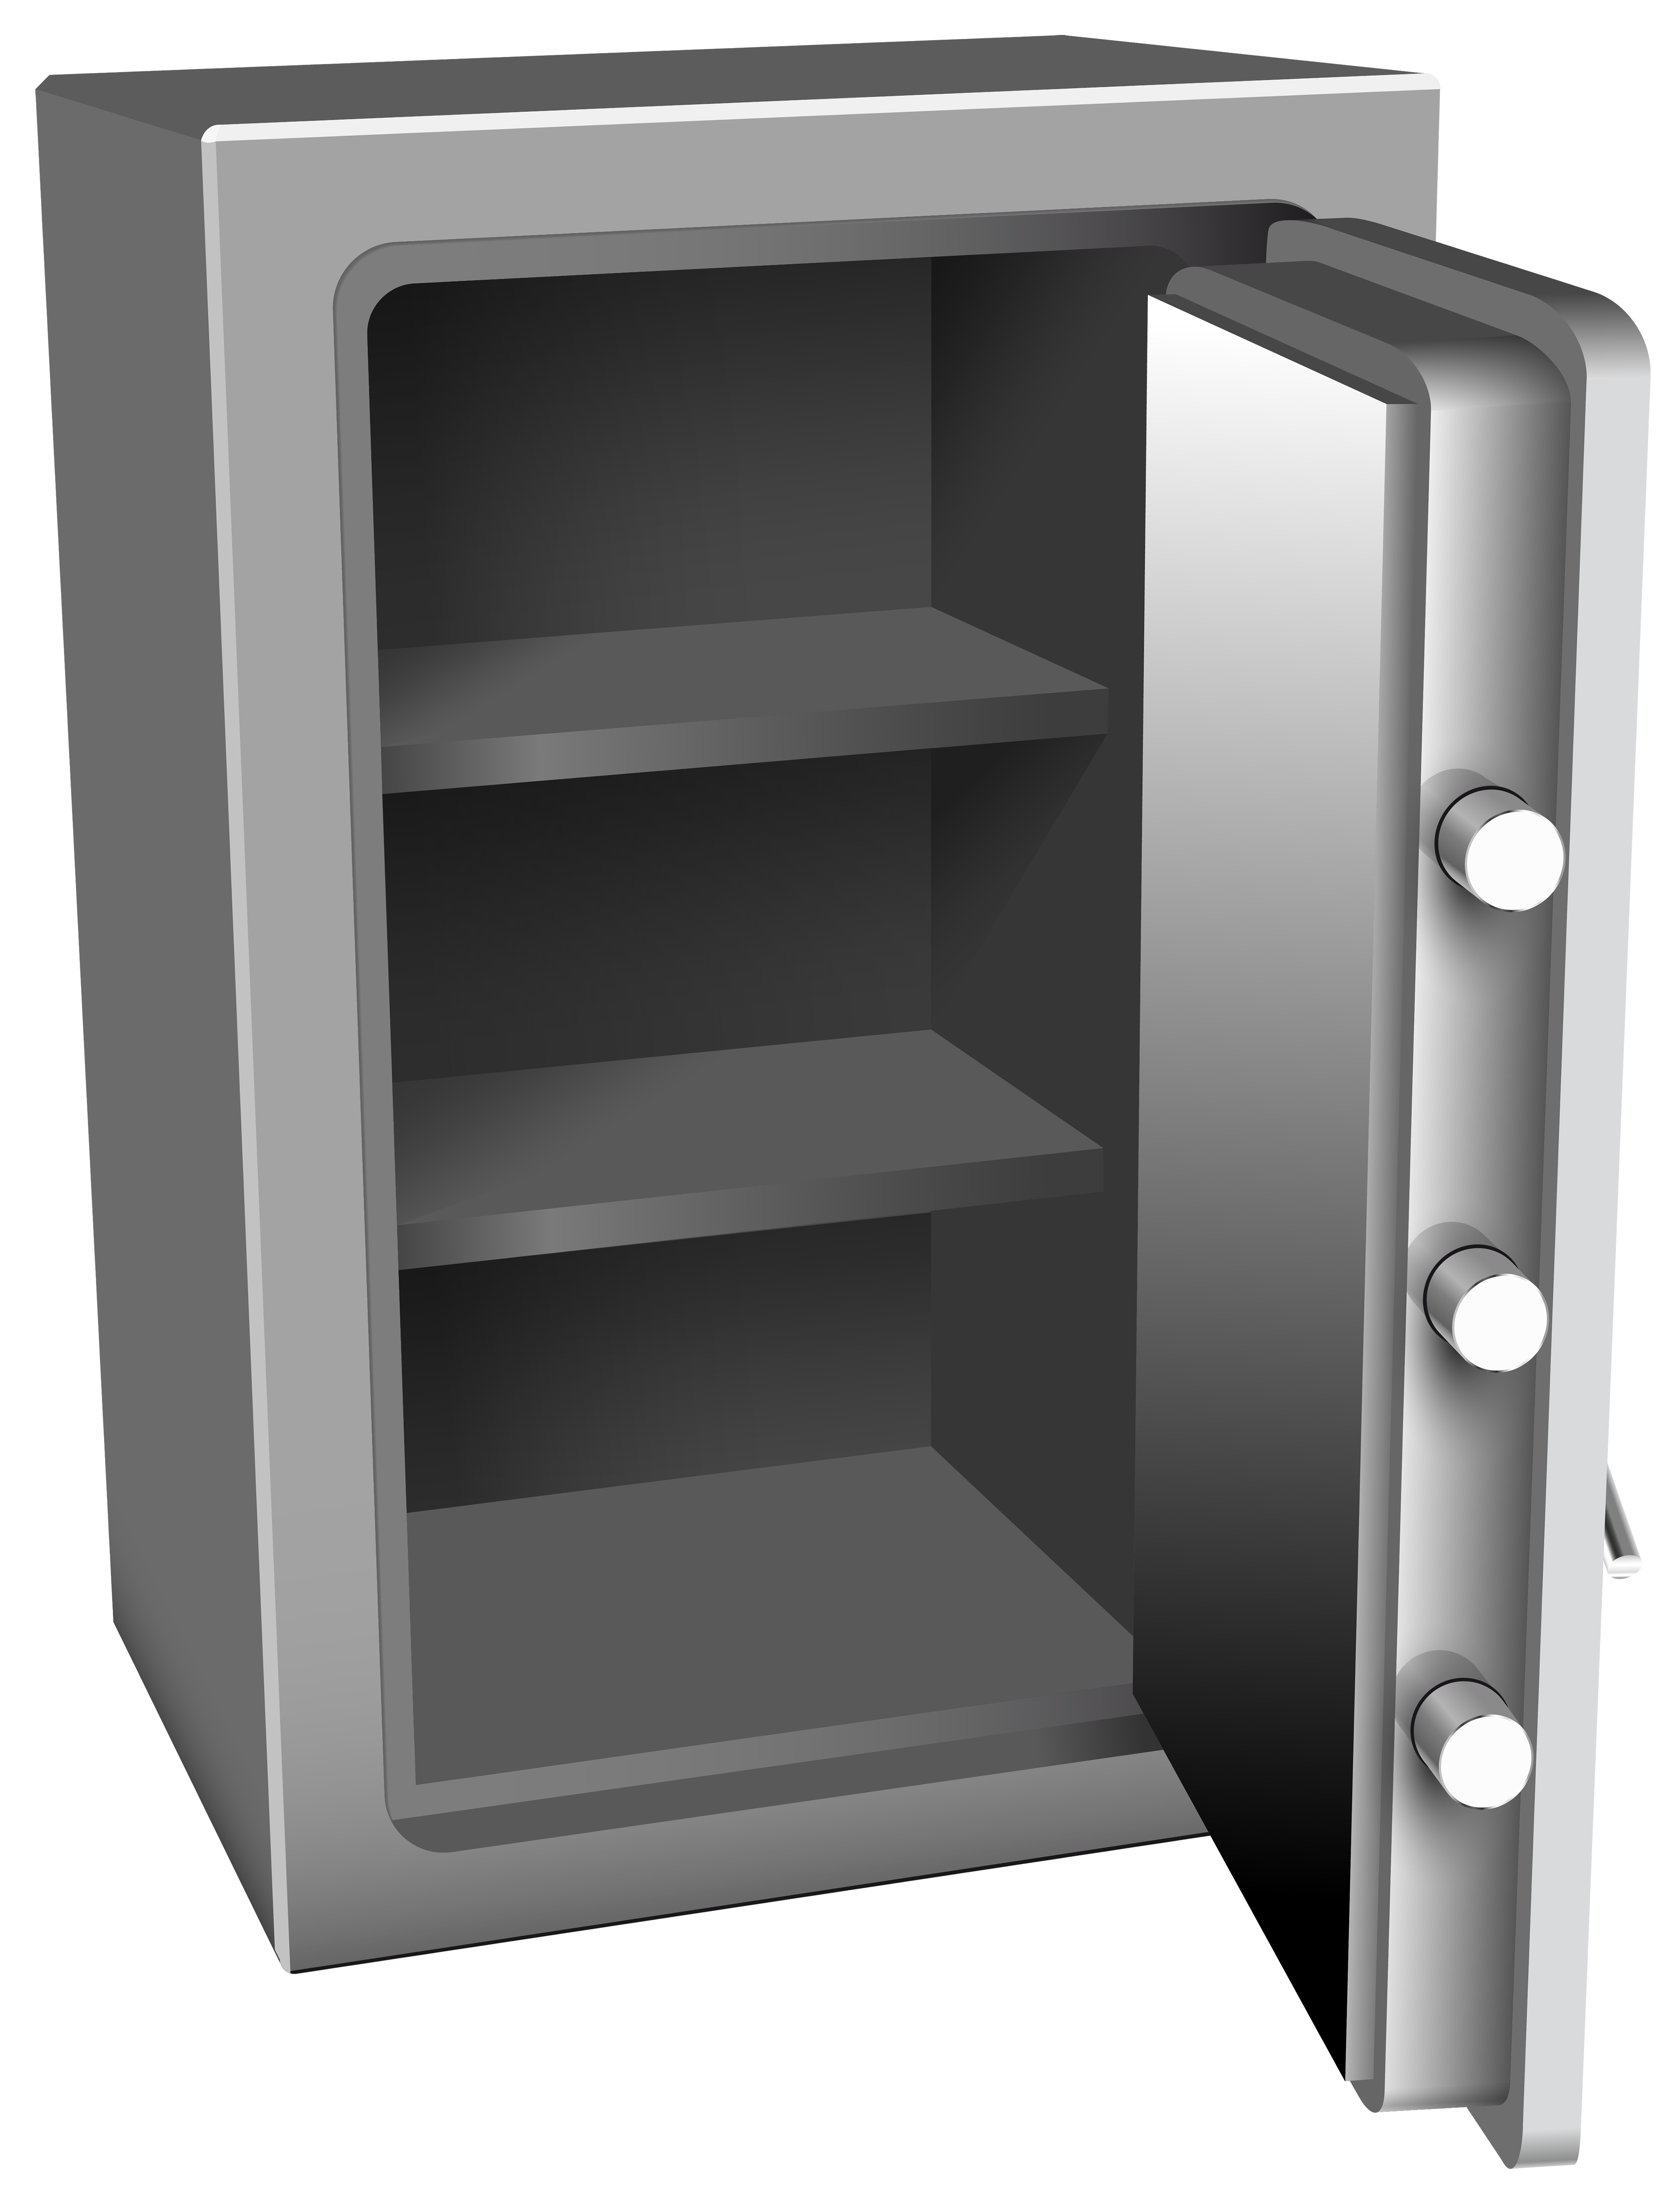 clip freeuse download Open silver png clip. Safe clipart